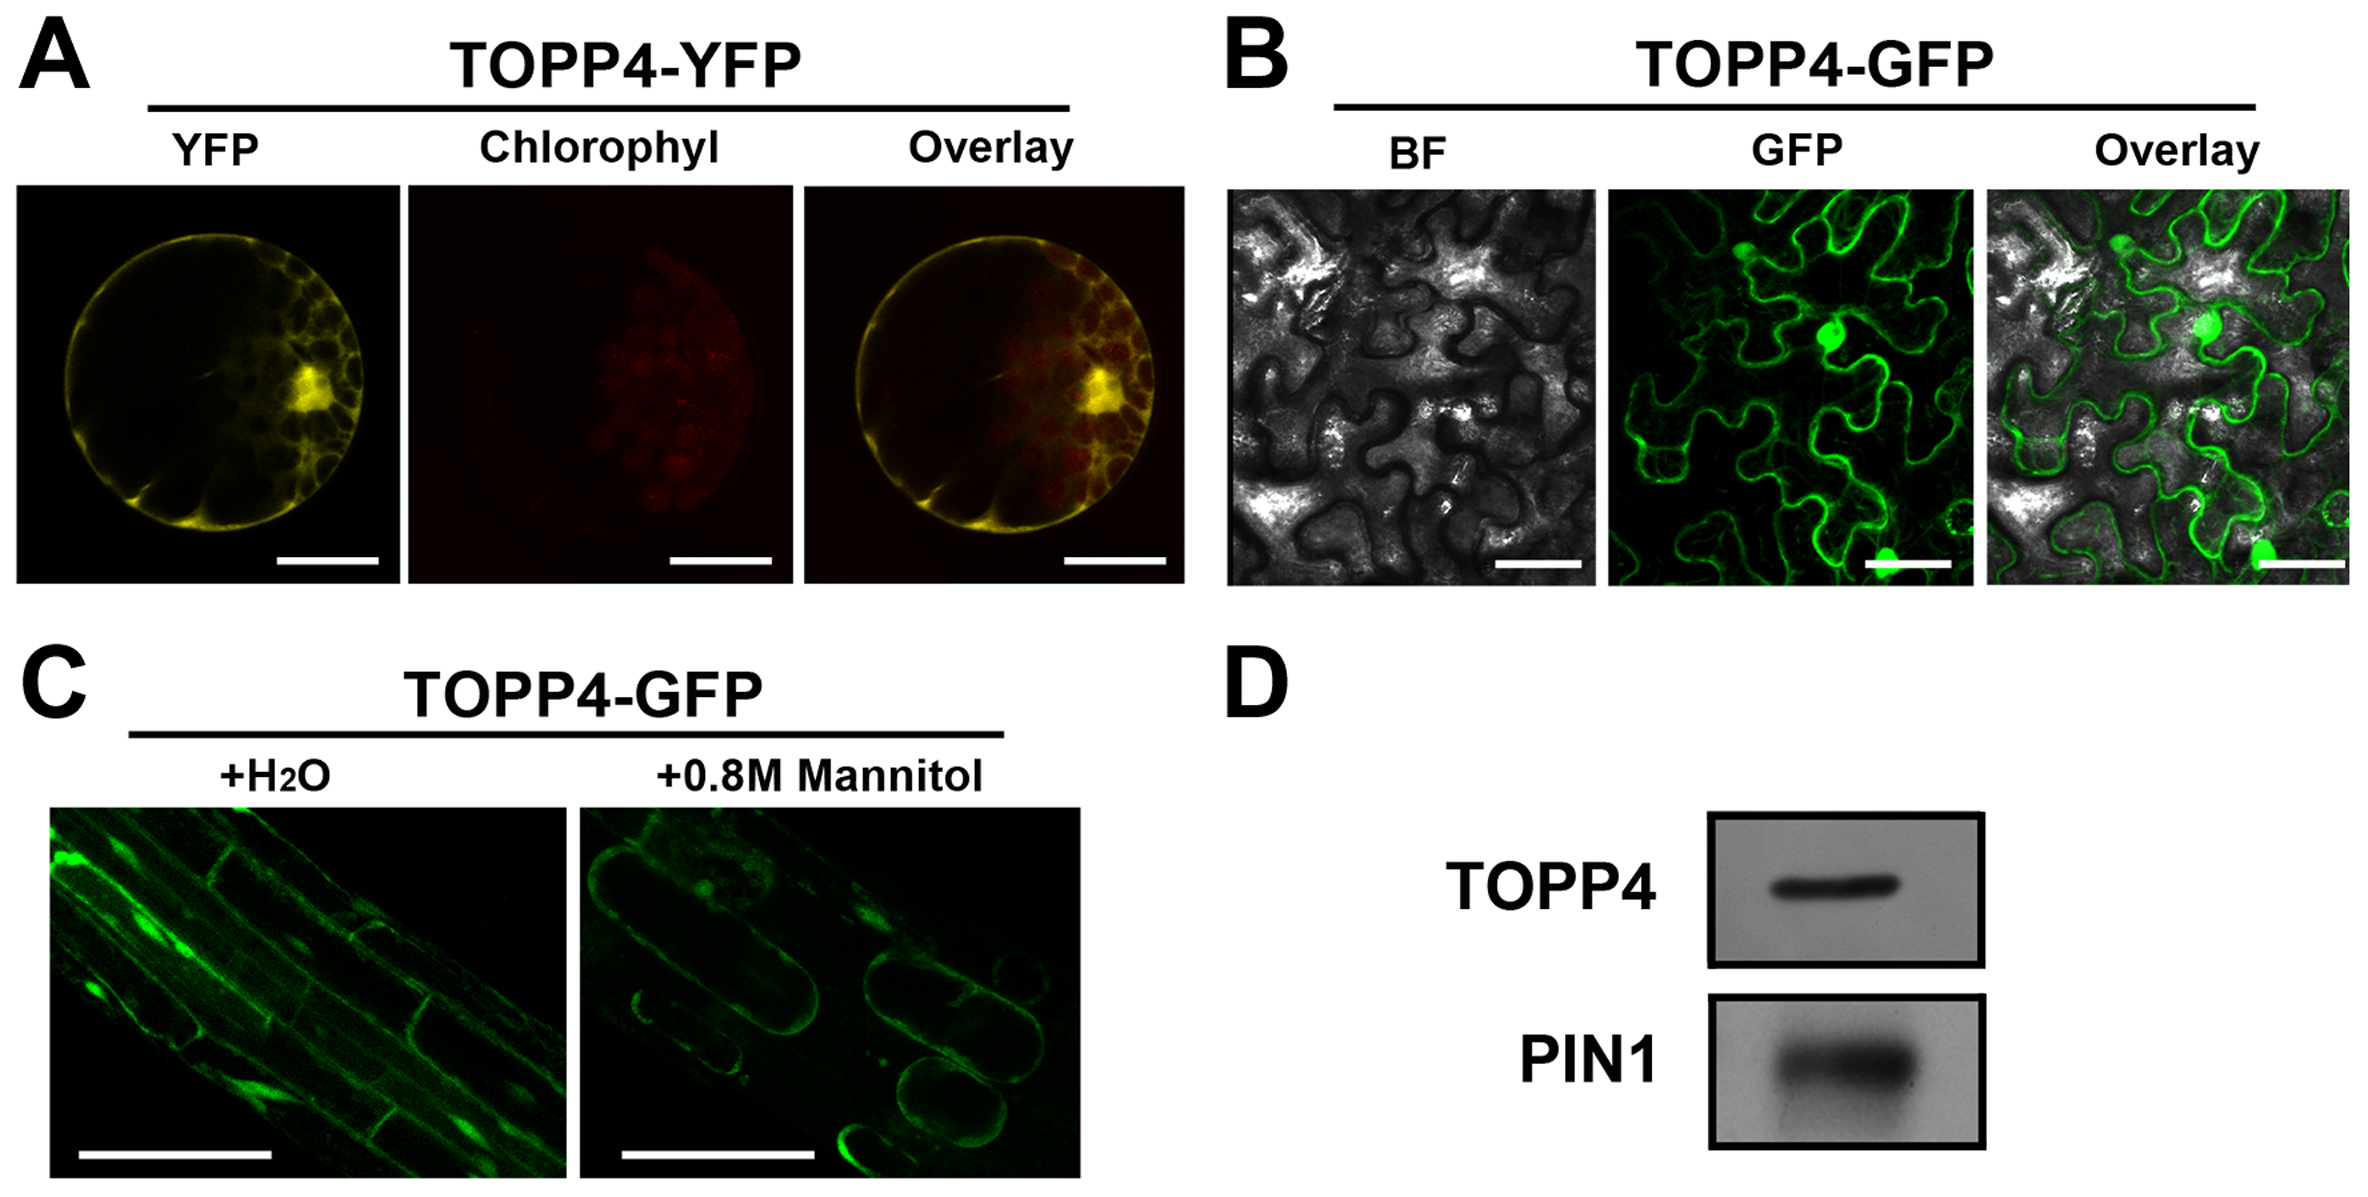 Subcellular localization of the TOPP4 protein.